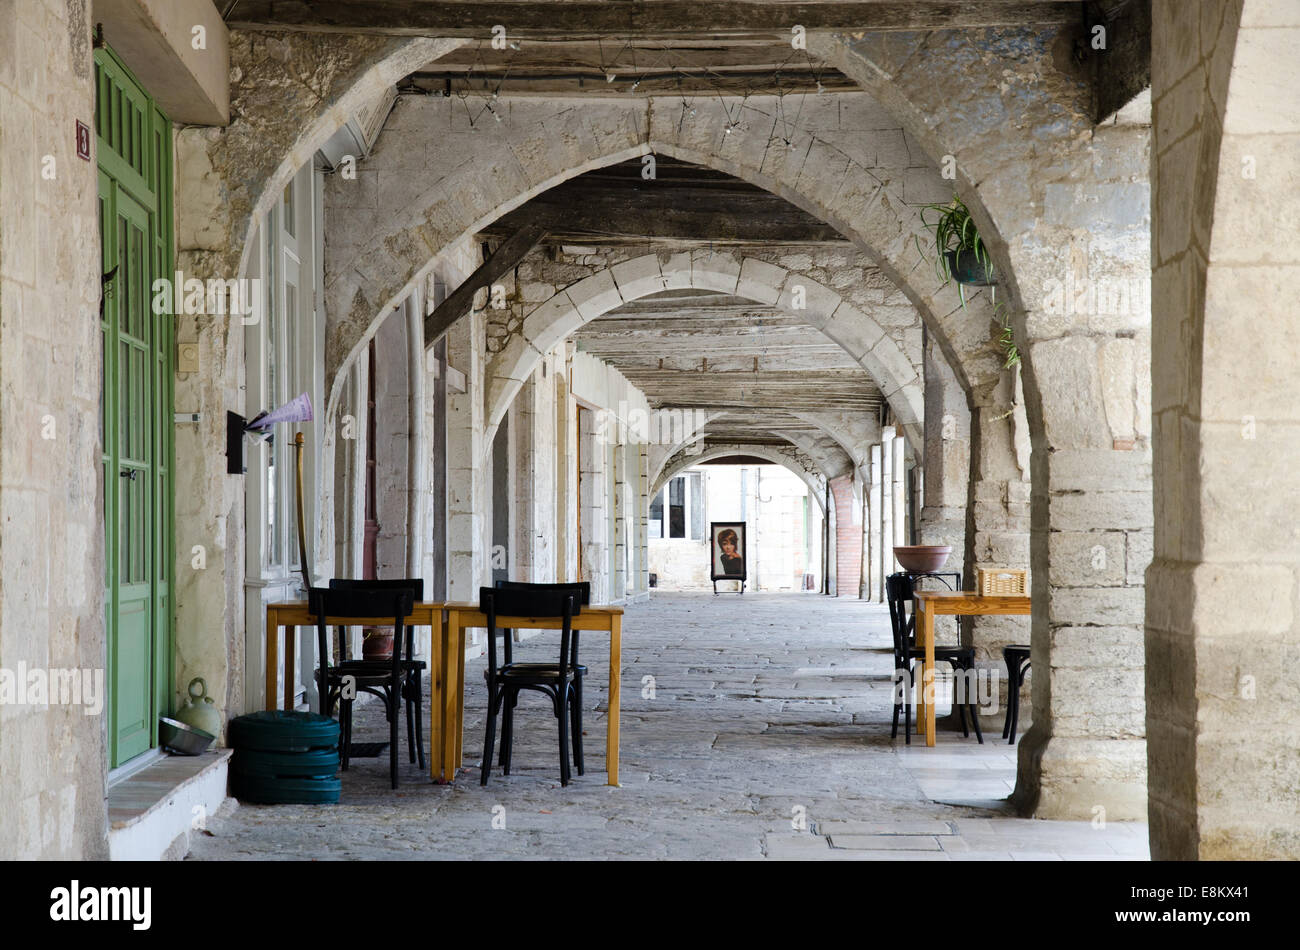 Arched alleyway in Montpezat, Quercy, South of France, Europe - Stock Image